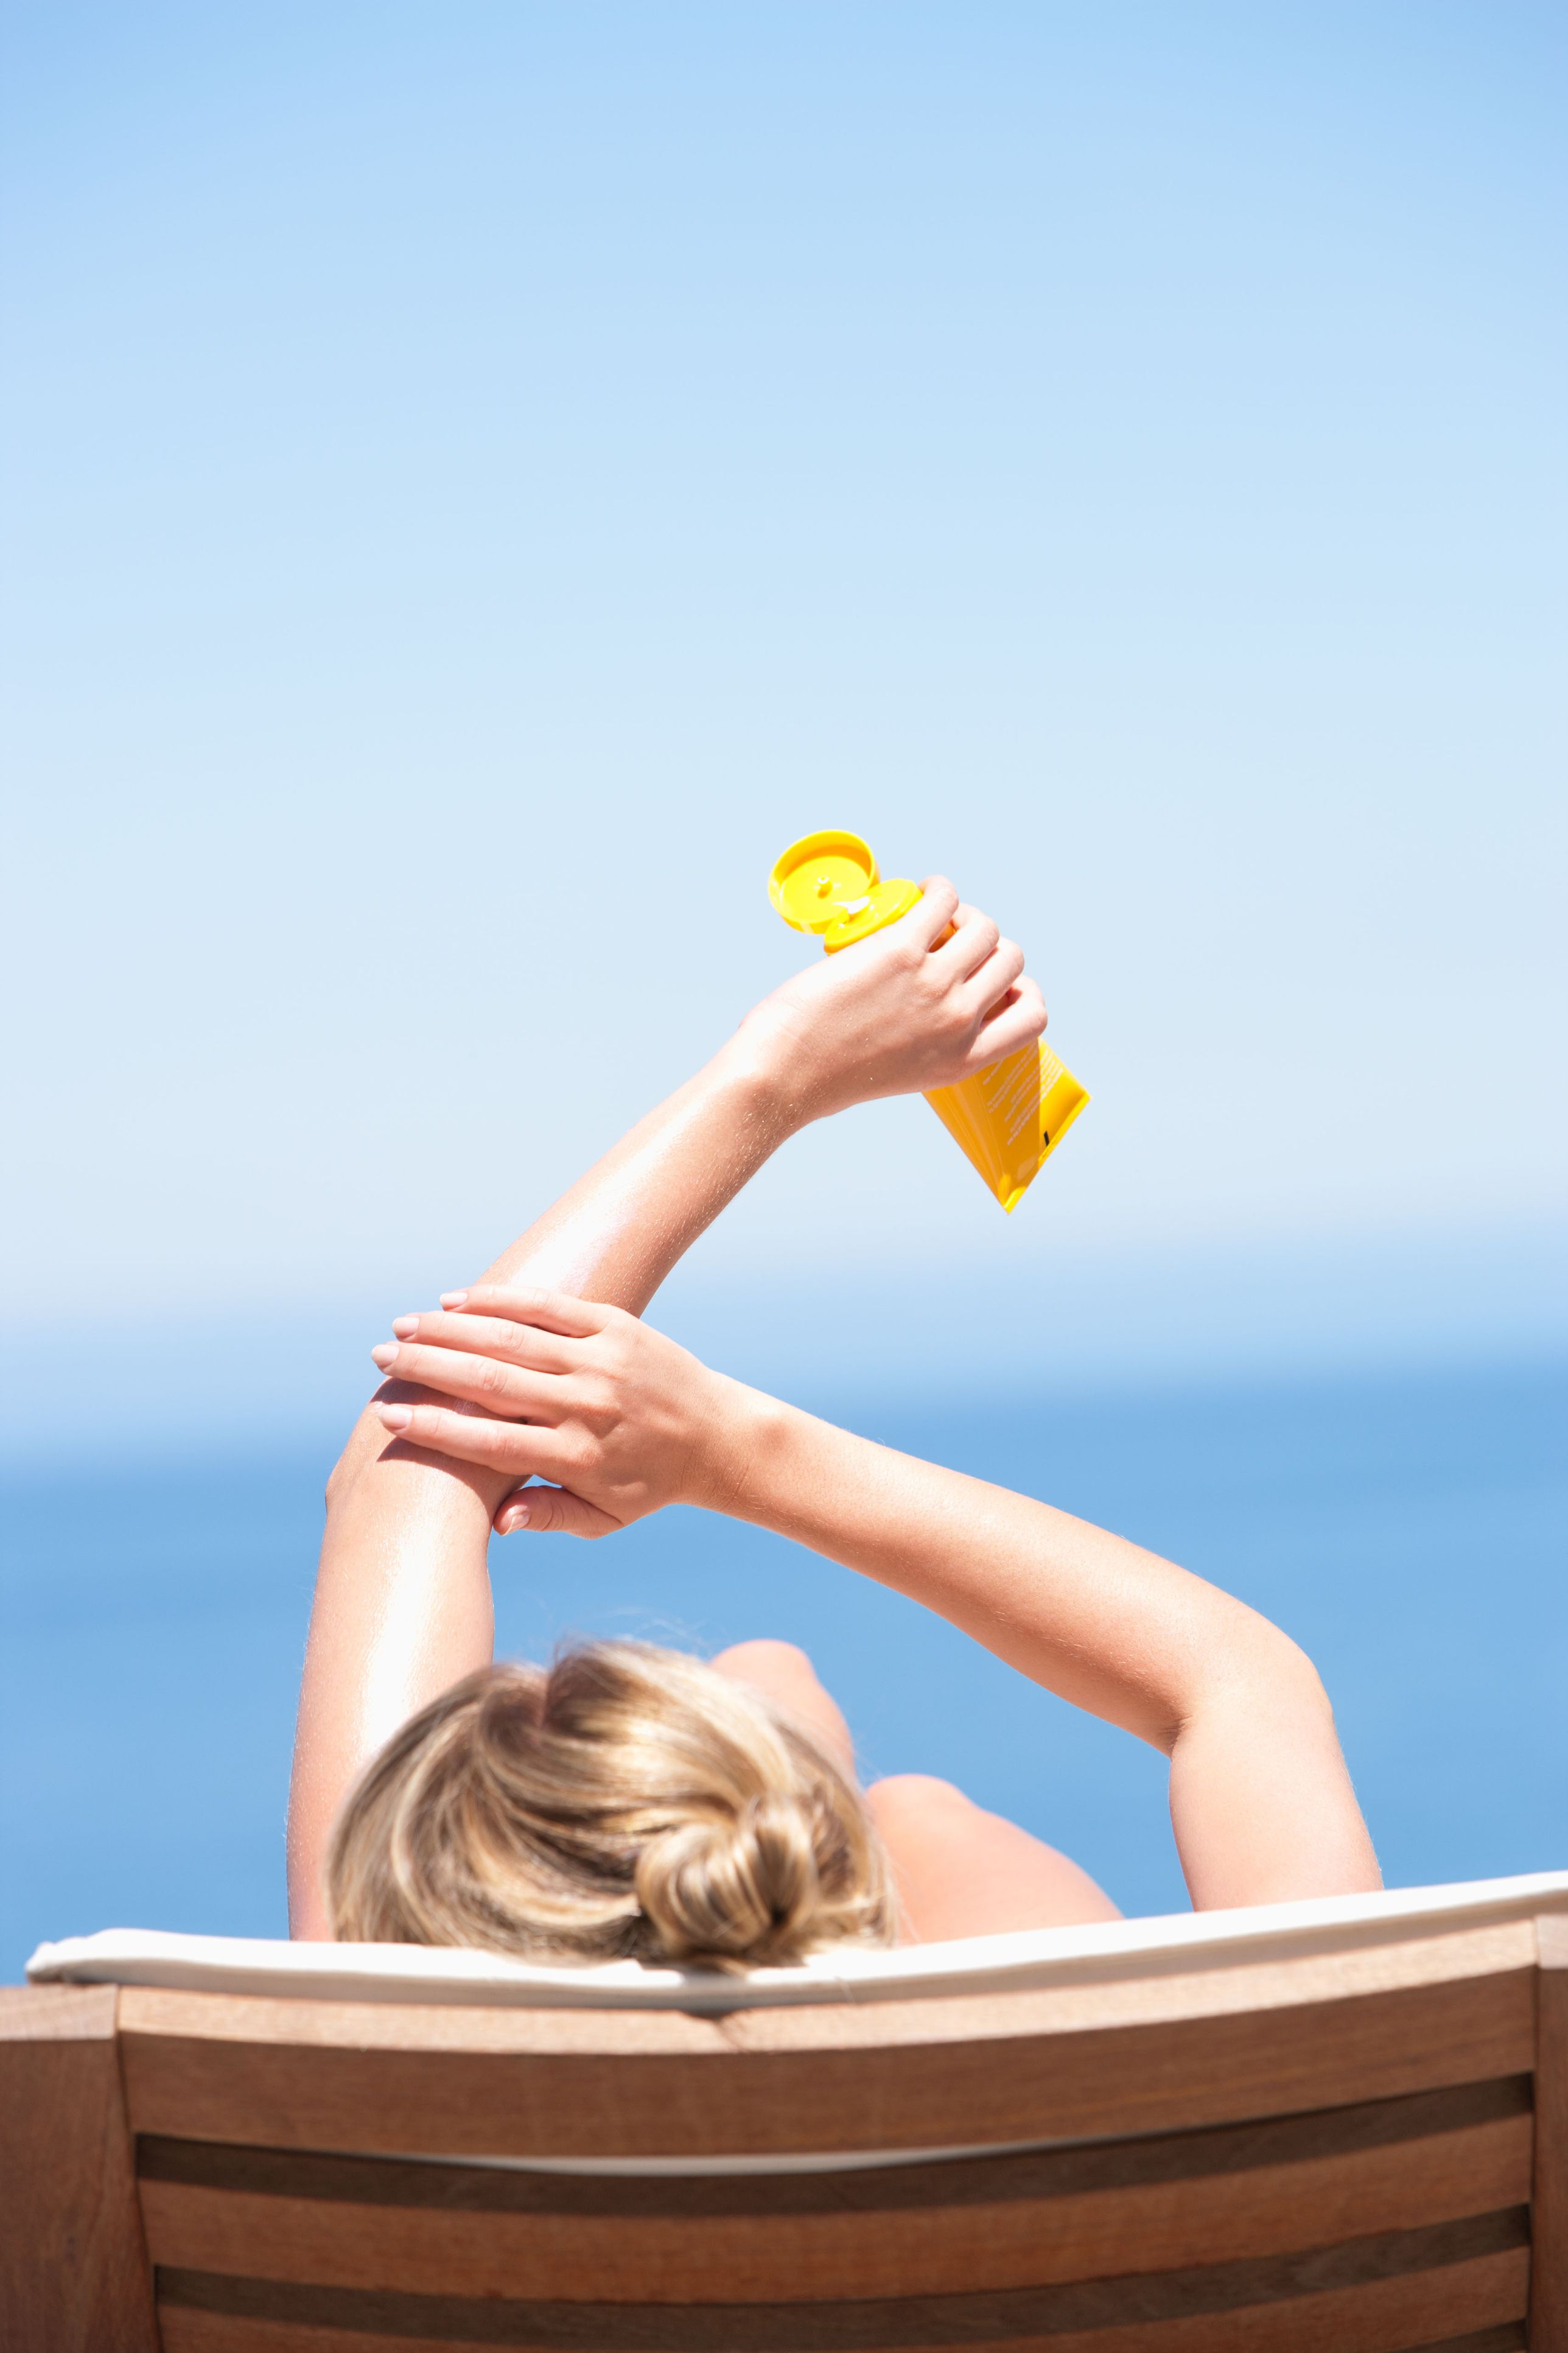 Discover Clever Ways To Protect Yourself From The Sun. The